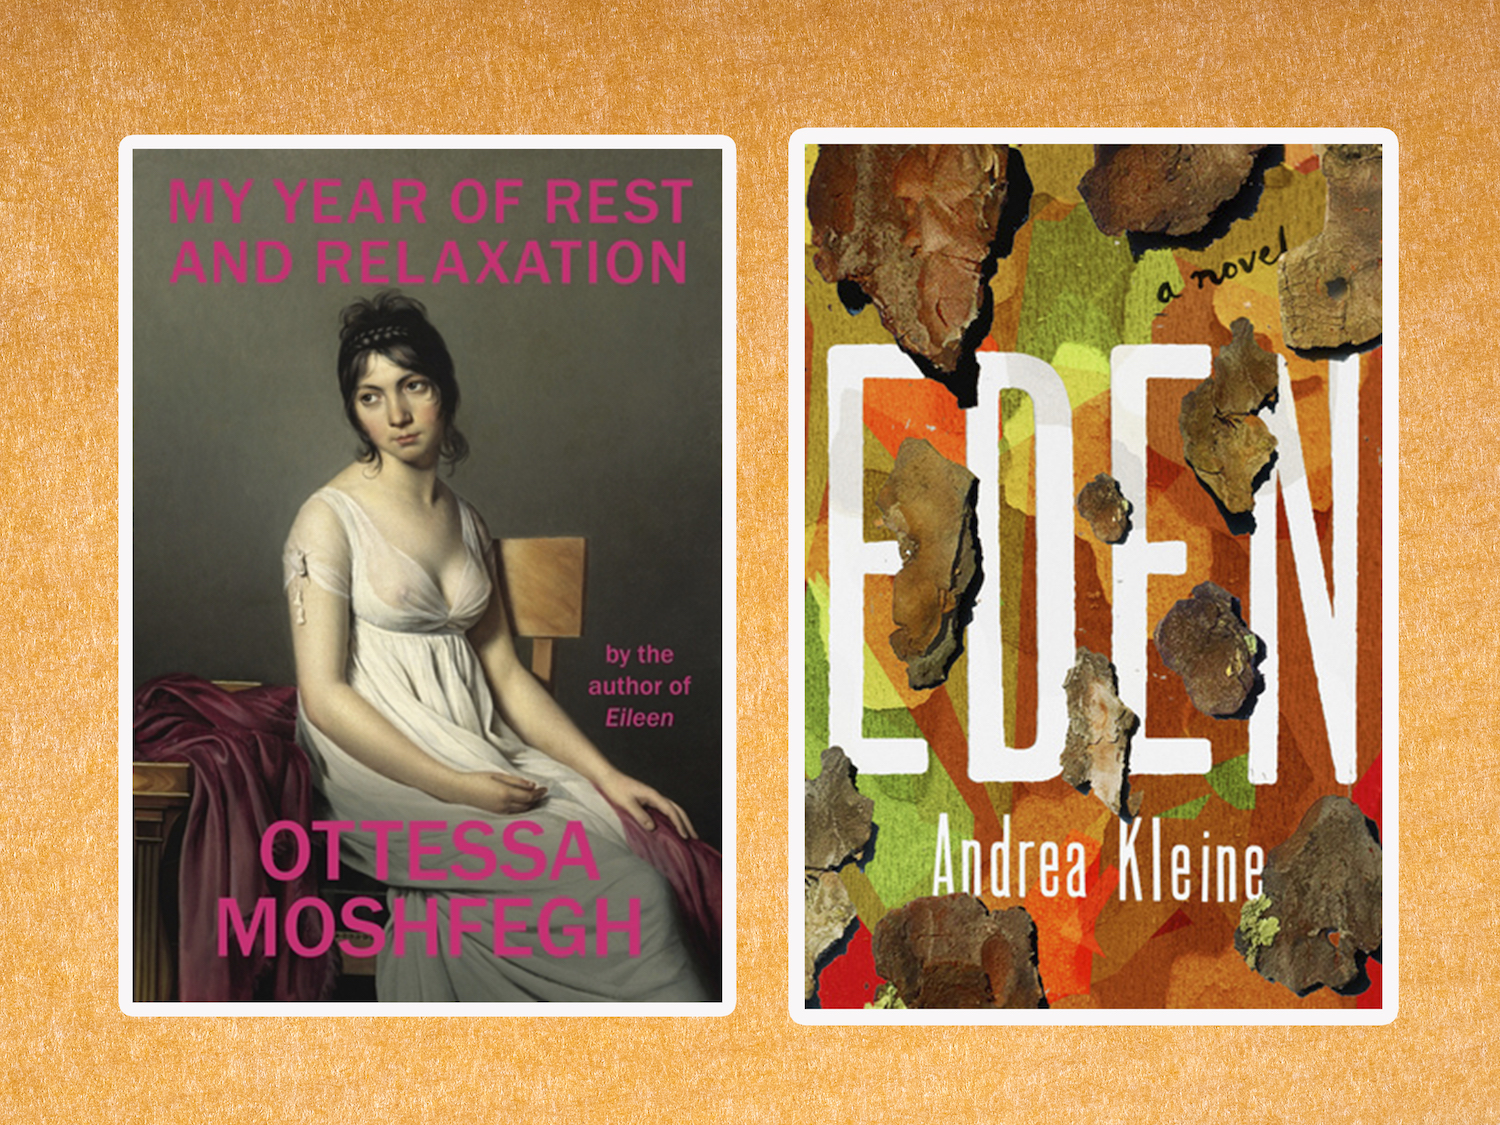 Books coming out this week: <em>Eden</em>, <em>My Year of Rest and Relaxation</em>, and more